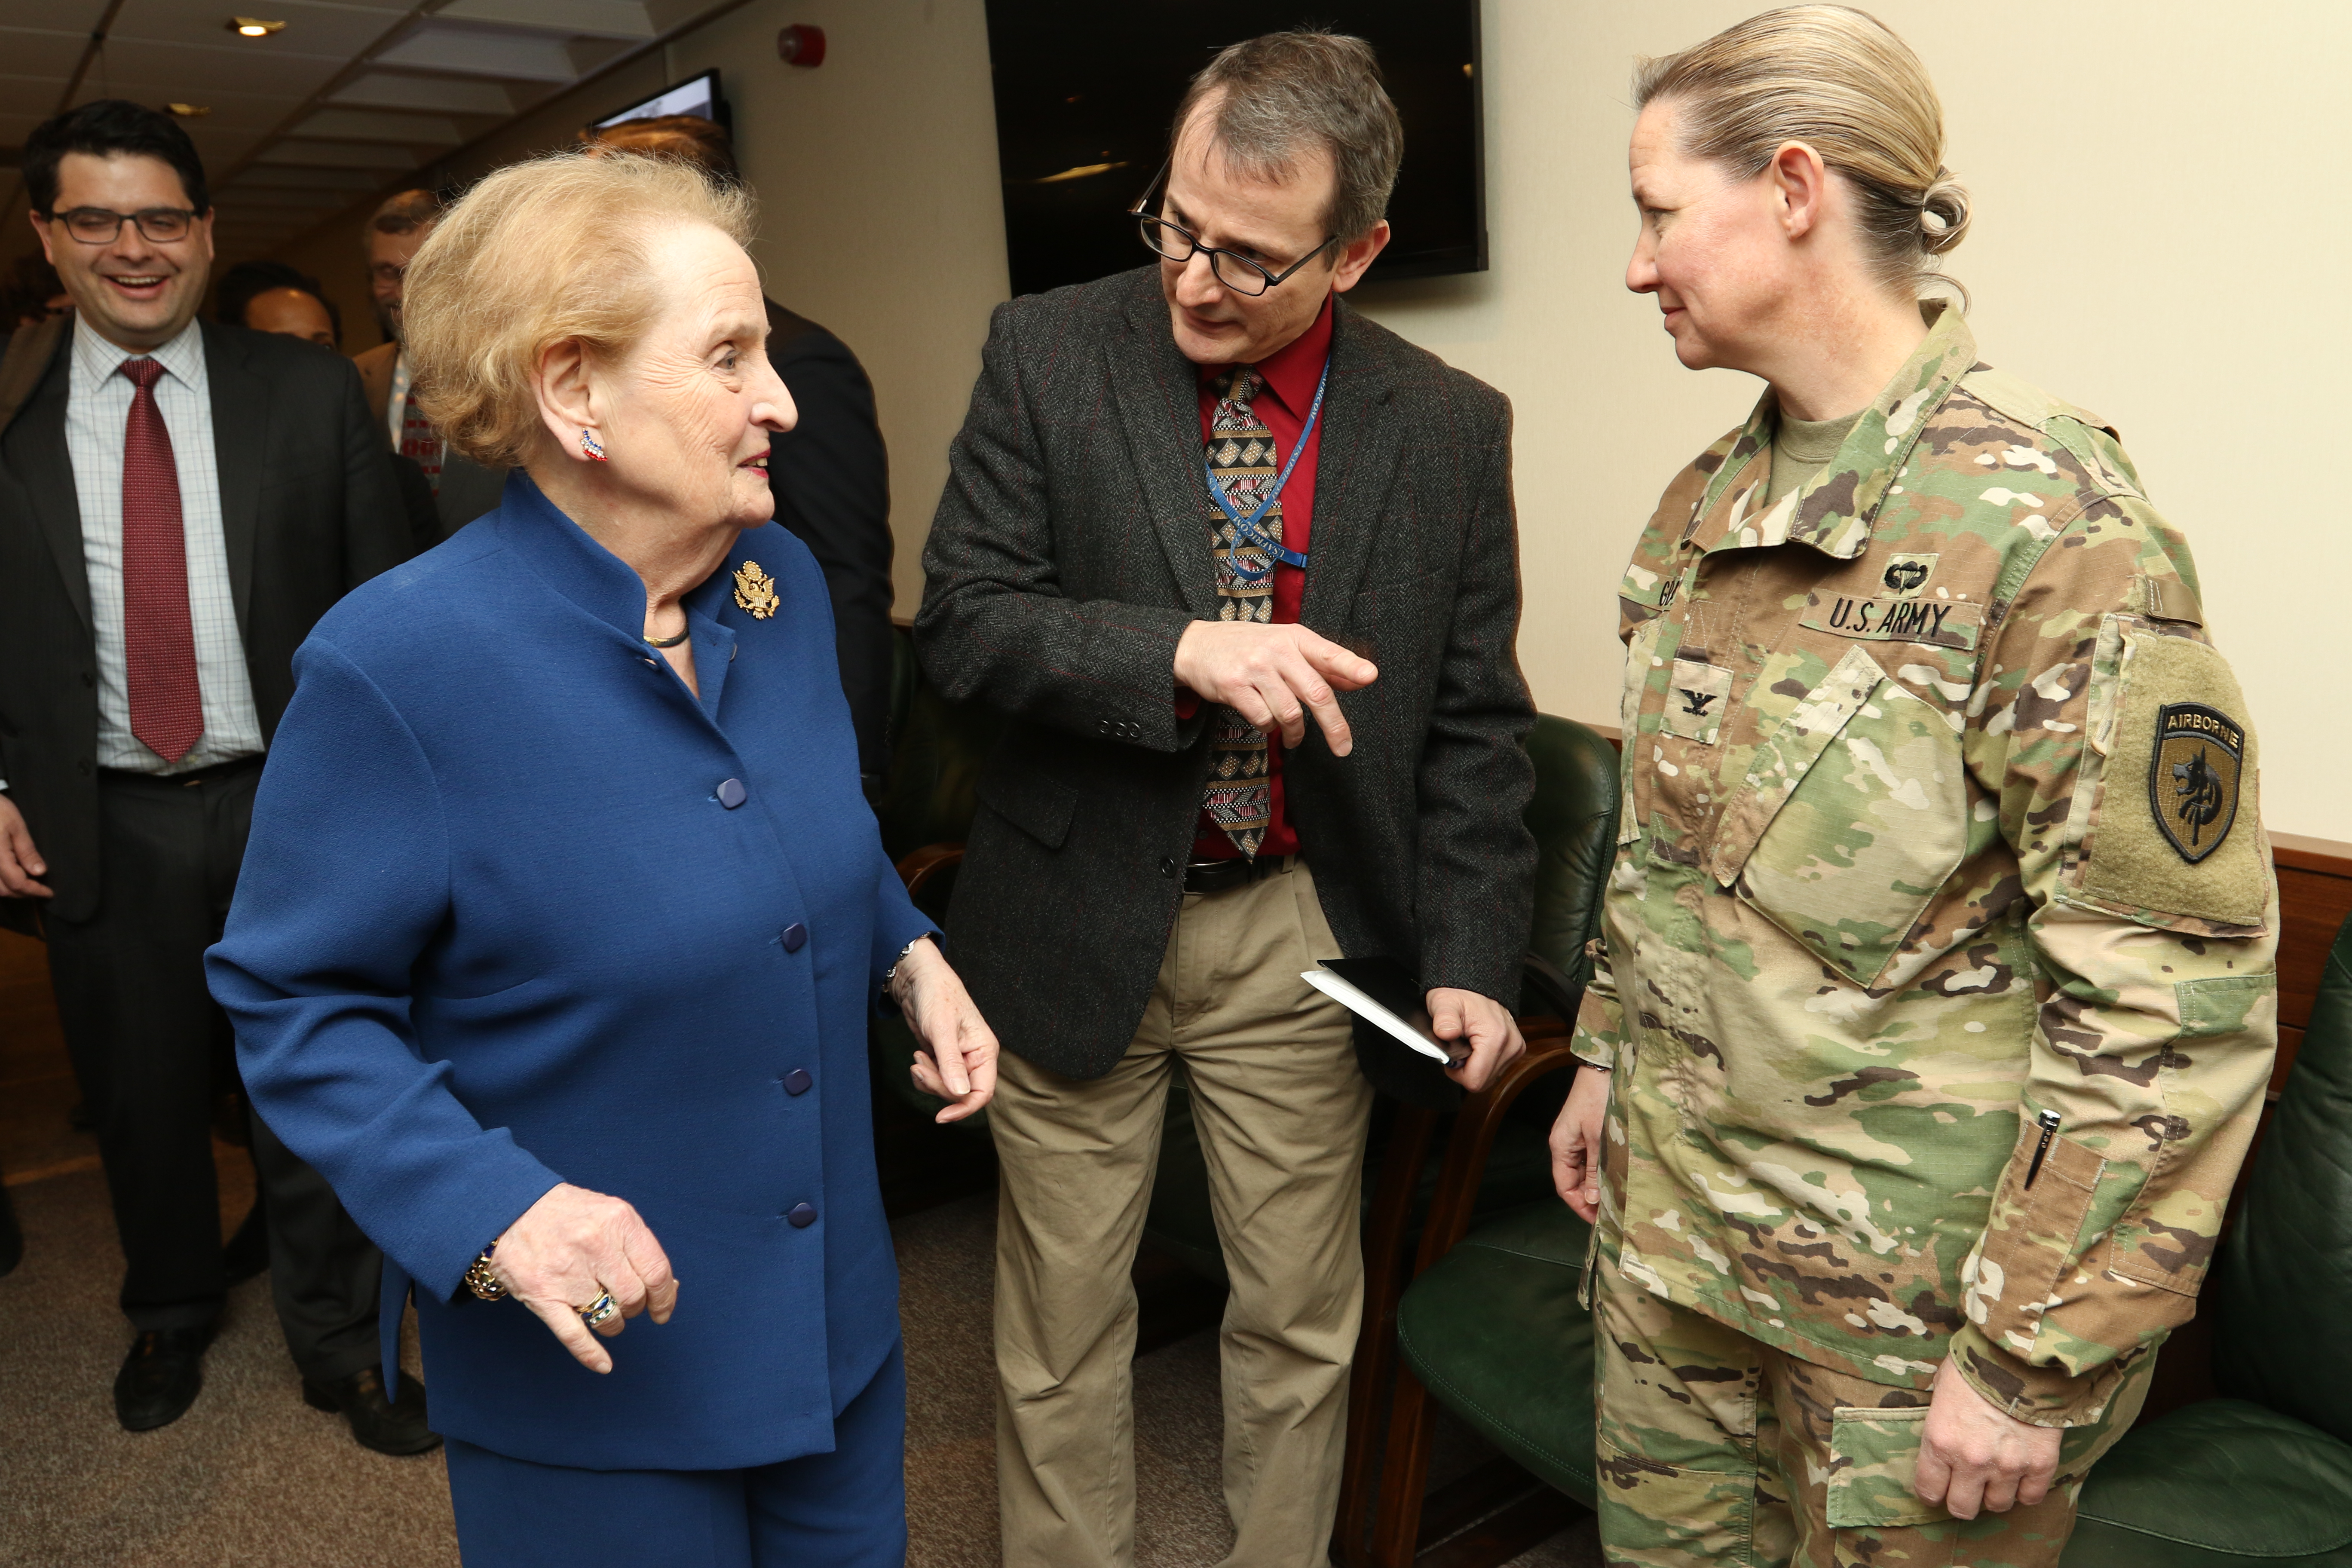 Jon Dahms, AFRICOM's Deputy for Public Affairs and Communication Synchronization division (center) introduces former Secretary of State Madeleine Albright to U.S. Army Colonel Kathy Graef, U.S. Special Operations Command-Africa's (USSOCAF) Director of Logistics (right), Feb. 16, 2017.  Albright traveled to U.S. Africa Command to learn about the command's programs and mission in Africa. (USAFRICOM photo by Brenda Law/Released)